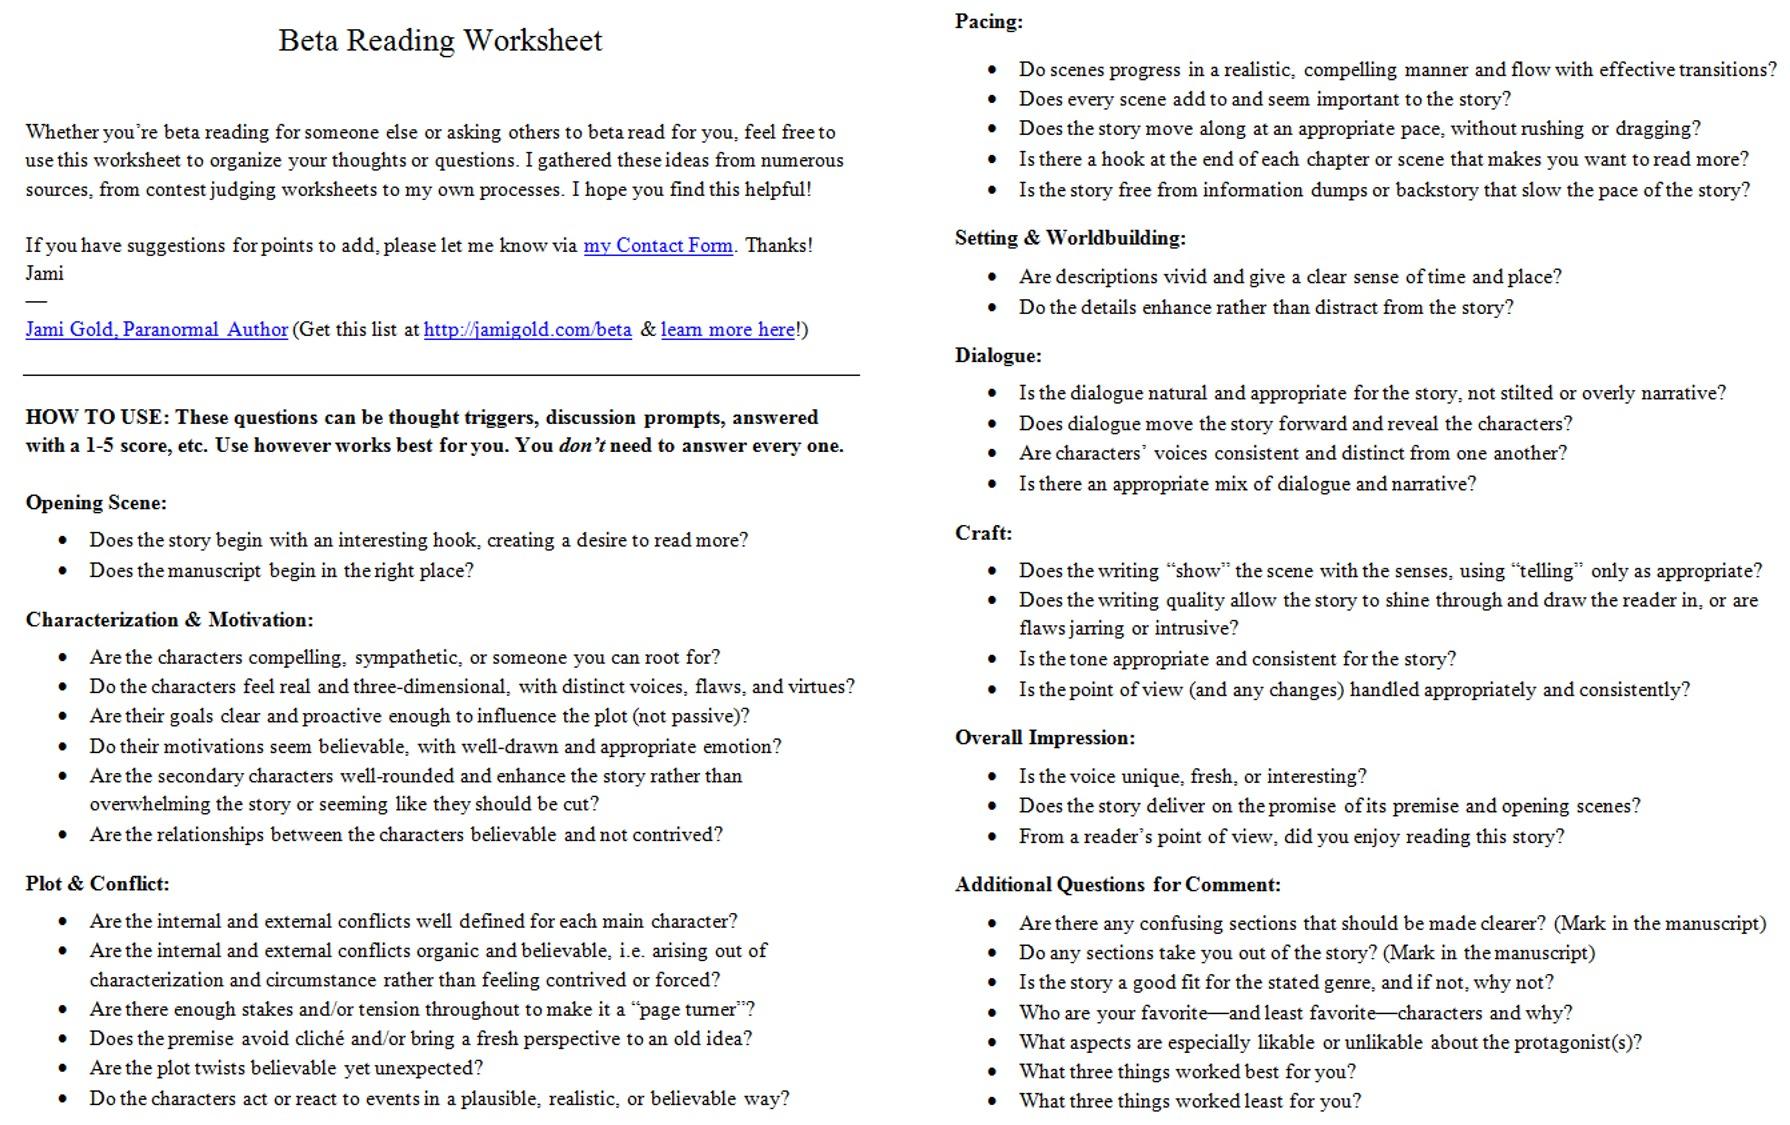 Aldiablosus  Inspiring Worksheets For Writers  Jami Gold Paranormal Author With Goodlooking Screen Shot Of The Twopage Beta Reading Worksheet With Adorable Cvc Words Worksheets Kindergarten Also Sh And Ch Worksheet In Addition Multiply By  Worksheets And Health And Safety Worksheets As Well As Grade  English Grammar Worksheets Additionally Nonfiction Reading Worksheets From Jamigoldcom With Aldiablosus  Goodlooking Worksheets For Writers  Jami Gold Paranormal Author With Adorable Screen Shot Of The Twopage Beta Reading Worksheet And Inspiring Cvc Words Worksheets Kindergarten Also Sh And Ch Worksheet In Addition Multiply By  Worksheets From Jamigoldcom